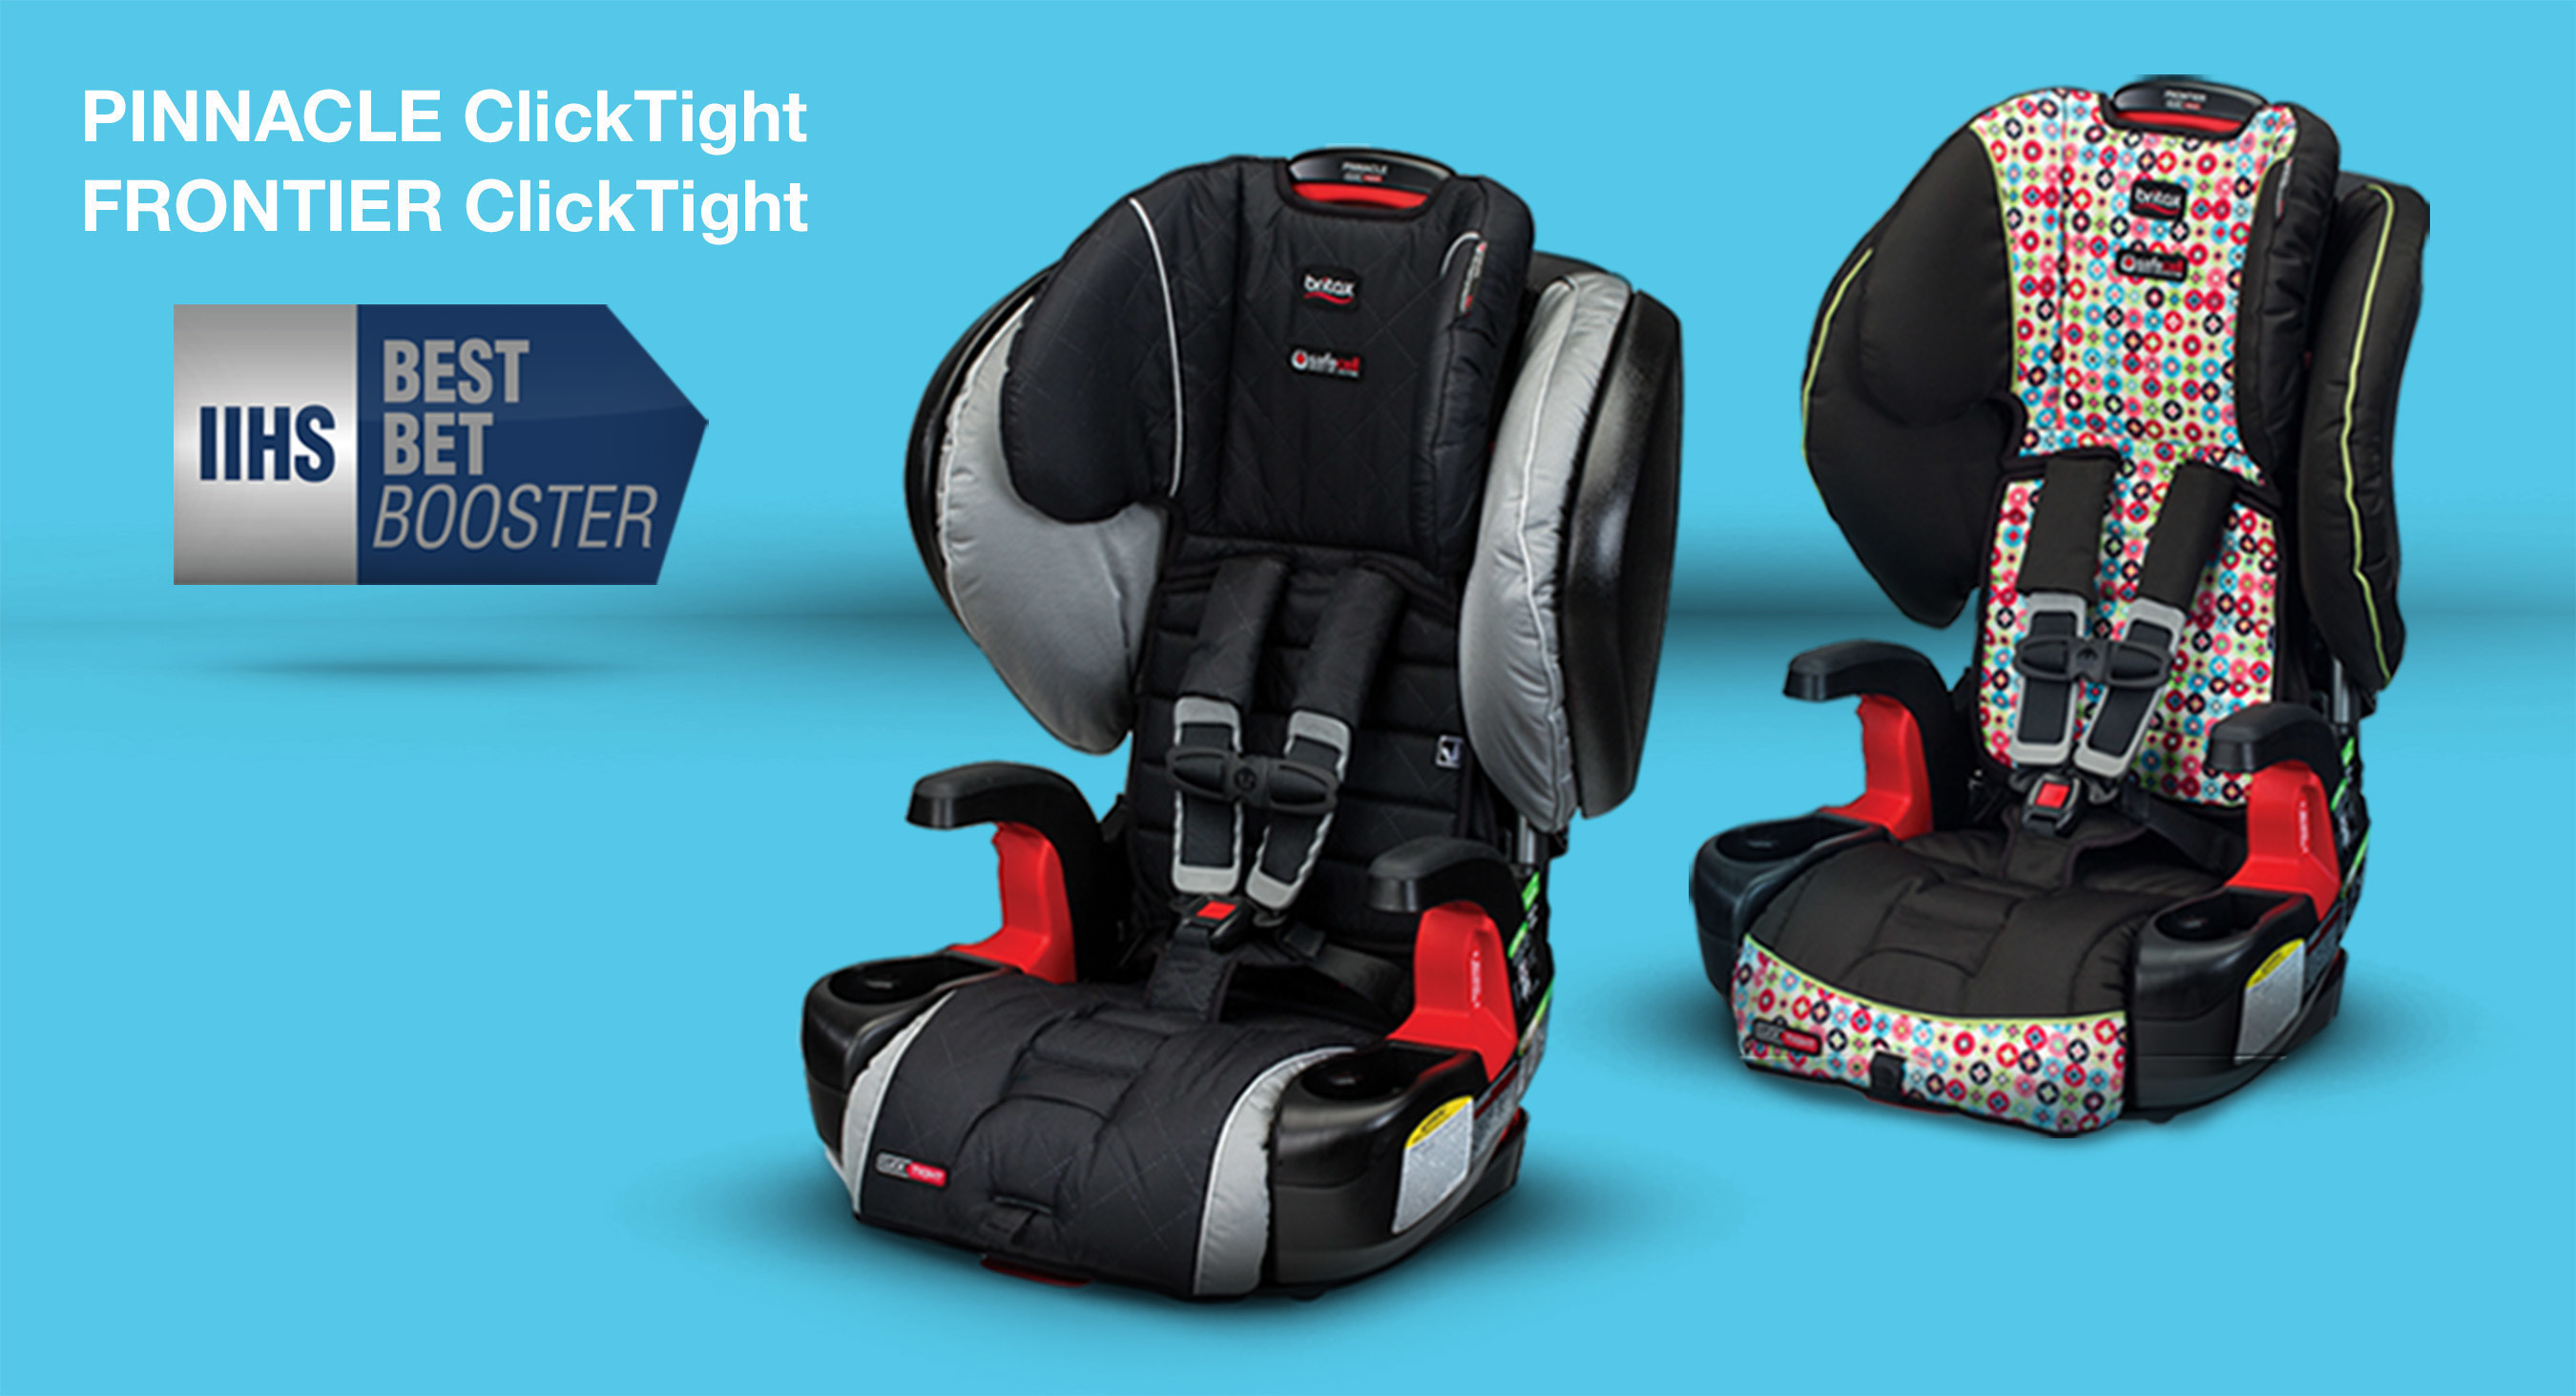 Britax Boosters Are IIHS Best